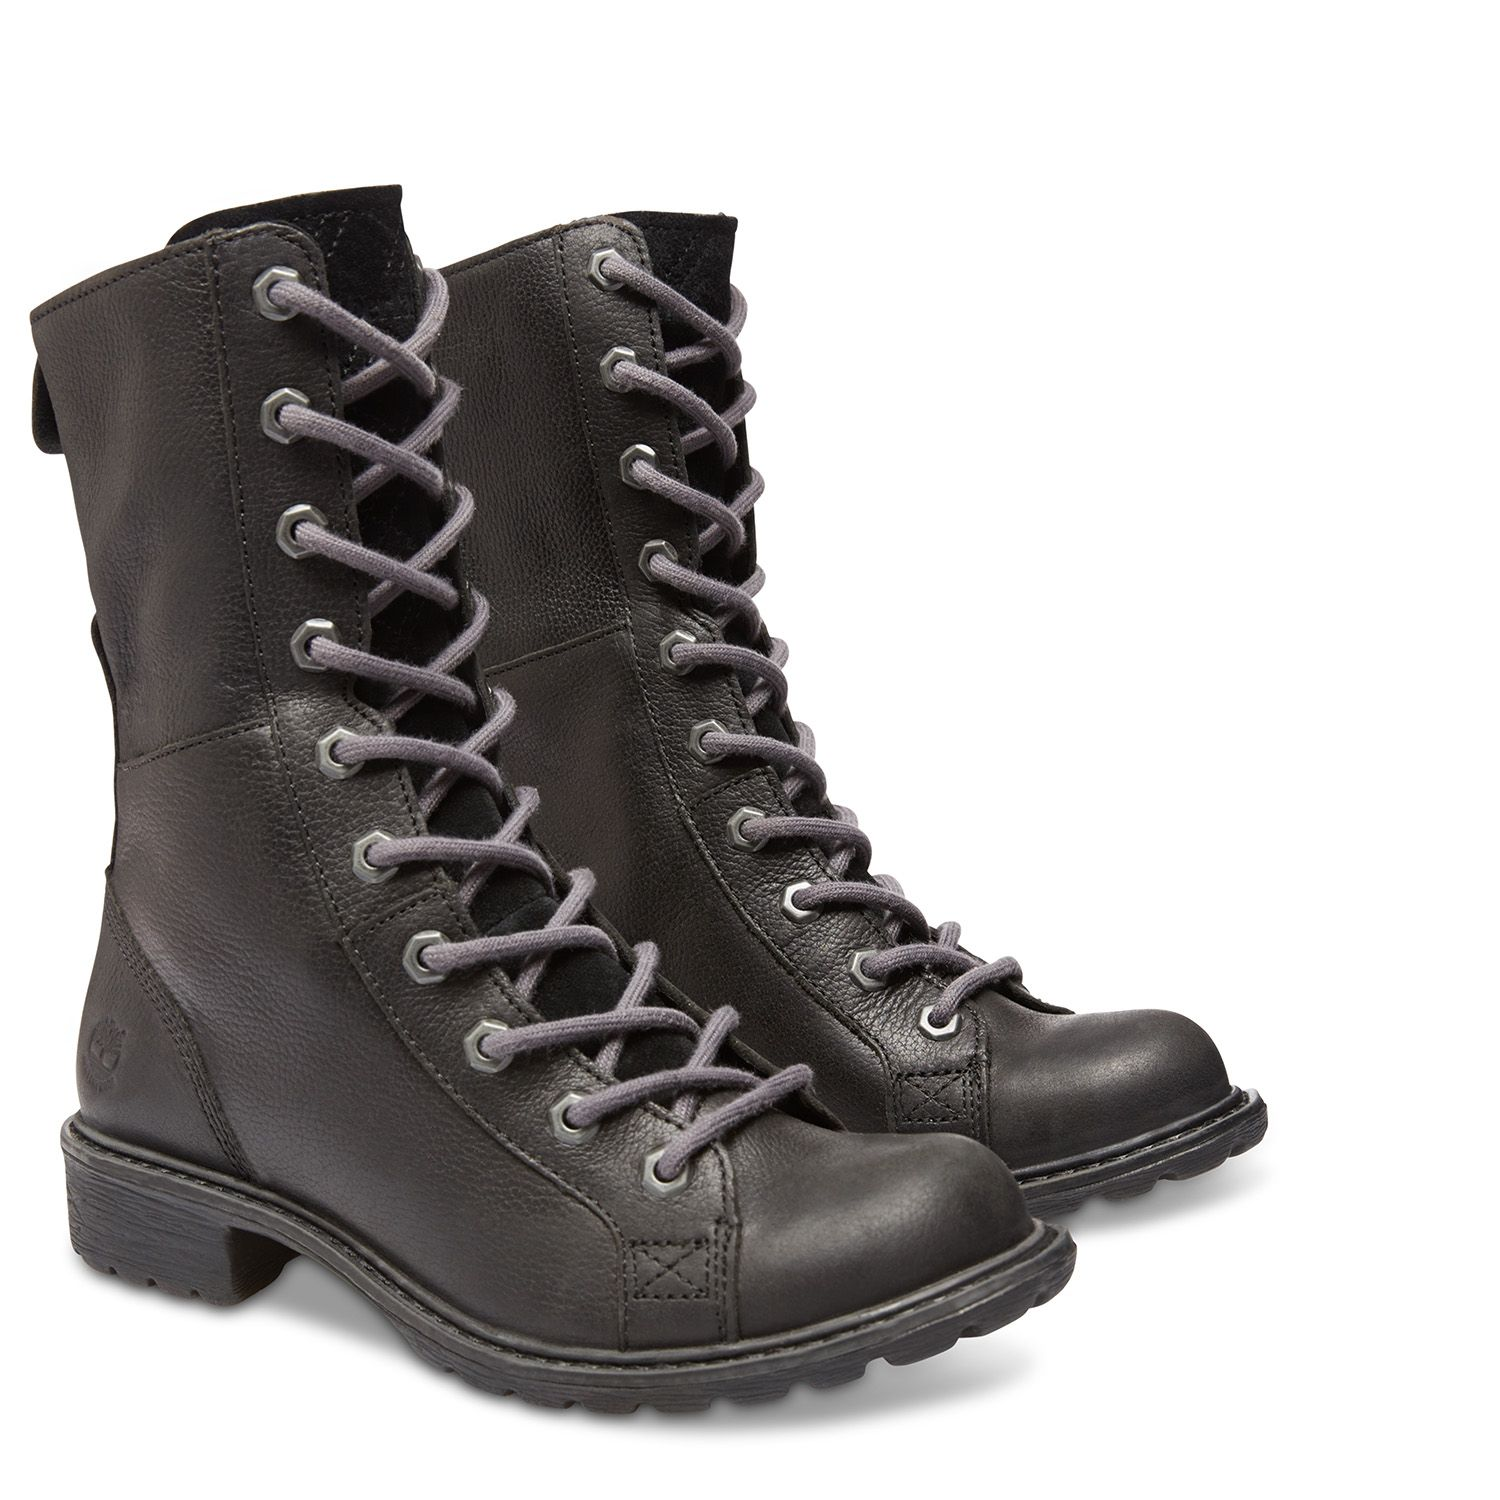 Timberland - Women's Stoddard Quilted Mid Lace Waterproof Boot ... : timberland quilted boots - Adamdwight.com